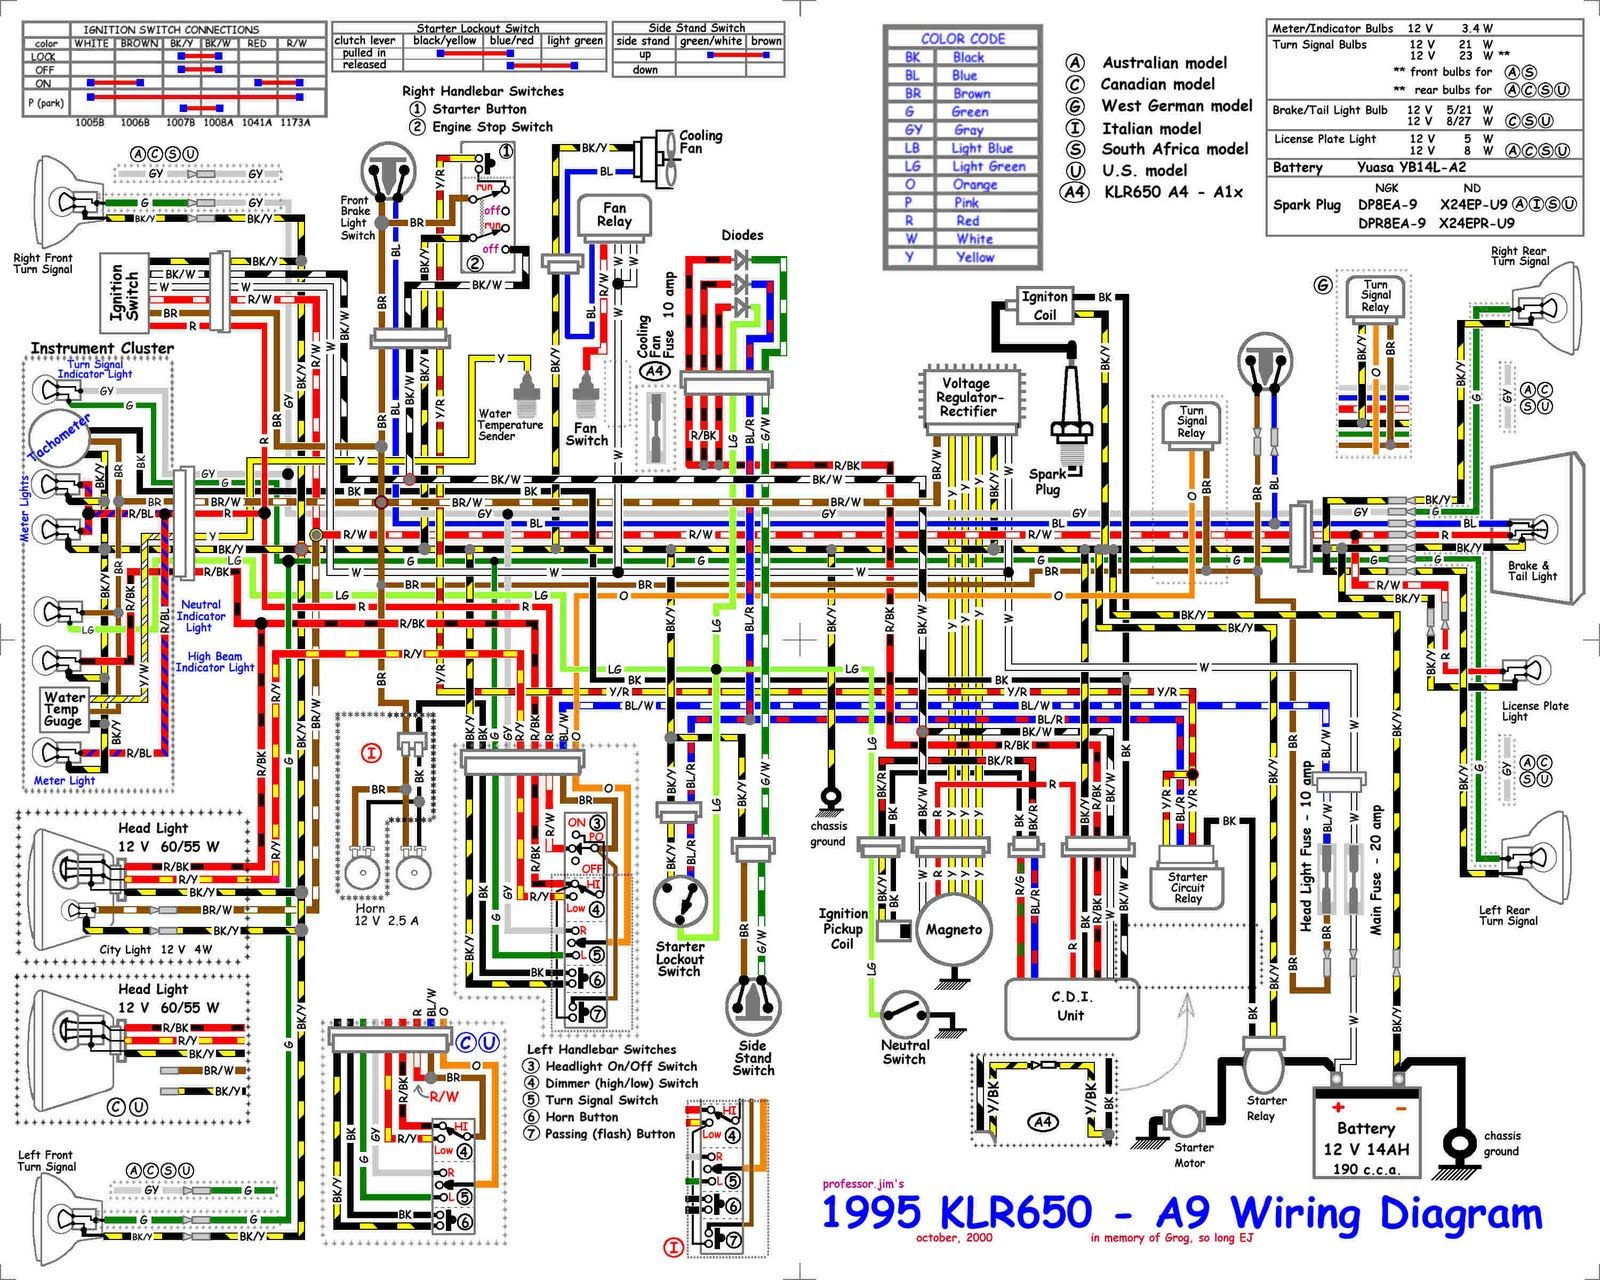 pin by larry hurt on cool cars electrical diagram, klr 650, diagram1974 monte carlo wiring diagram jpg 1,600�1,280 pixels electrical